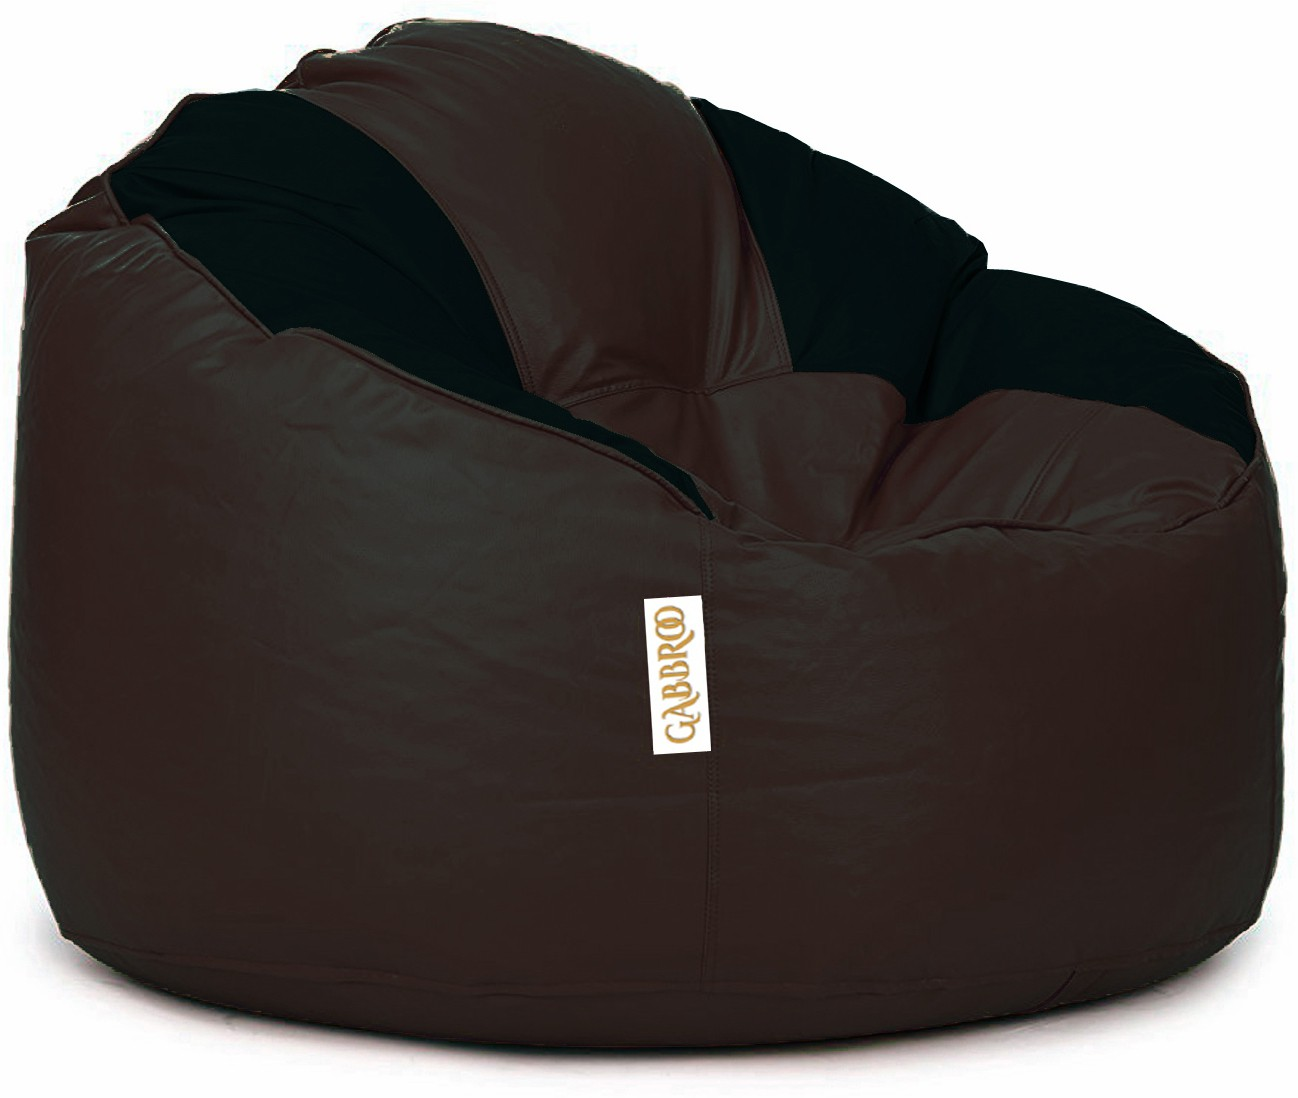 View Gabbroo XL Lounger Bean Bag Cover(Brown, Black) Furniture (StyleCraft)